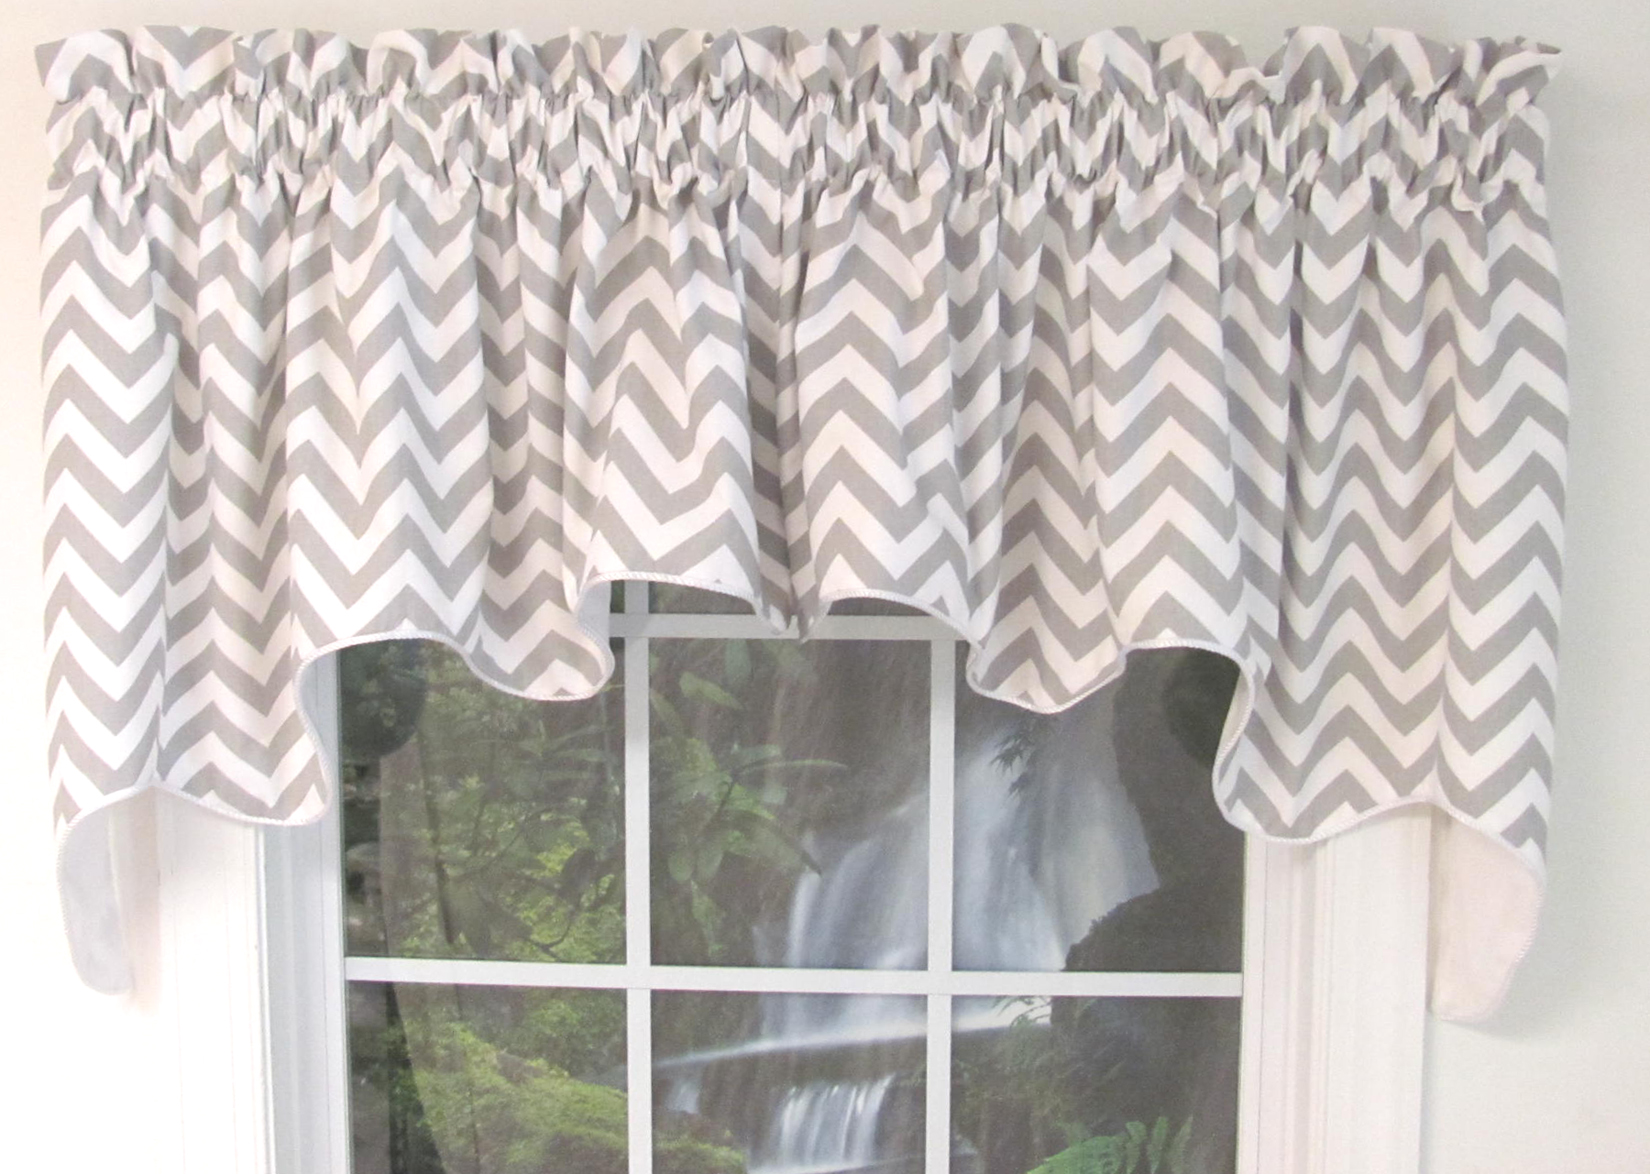 astonishing valances pattern ideas full living curtains kitchen with valance walmart and swags waverly for size curtain room of swag bedroom blue attached